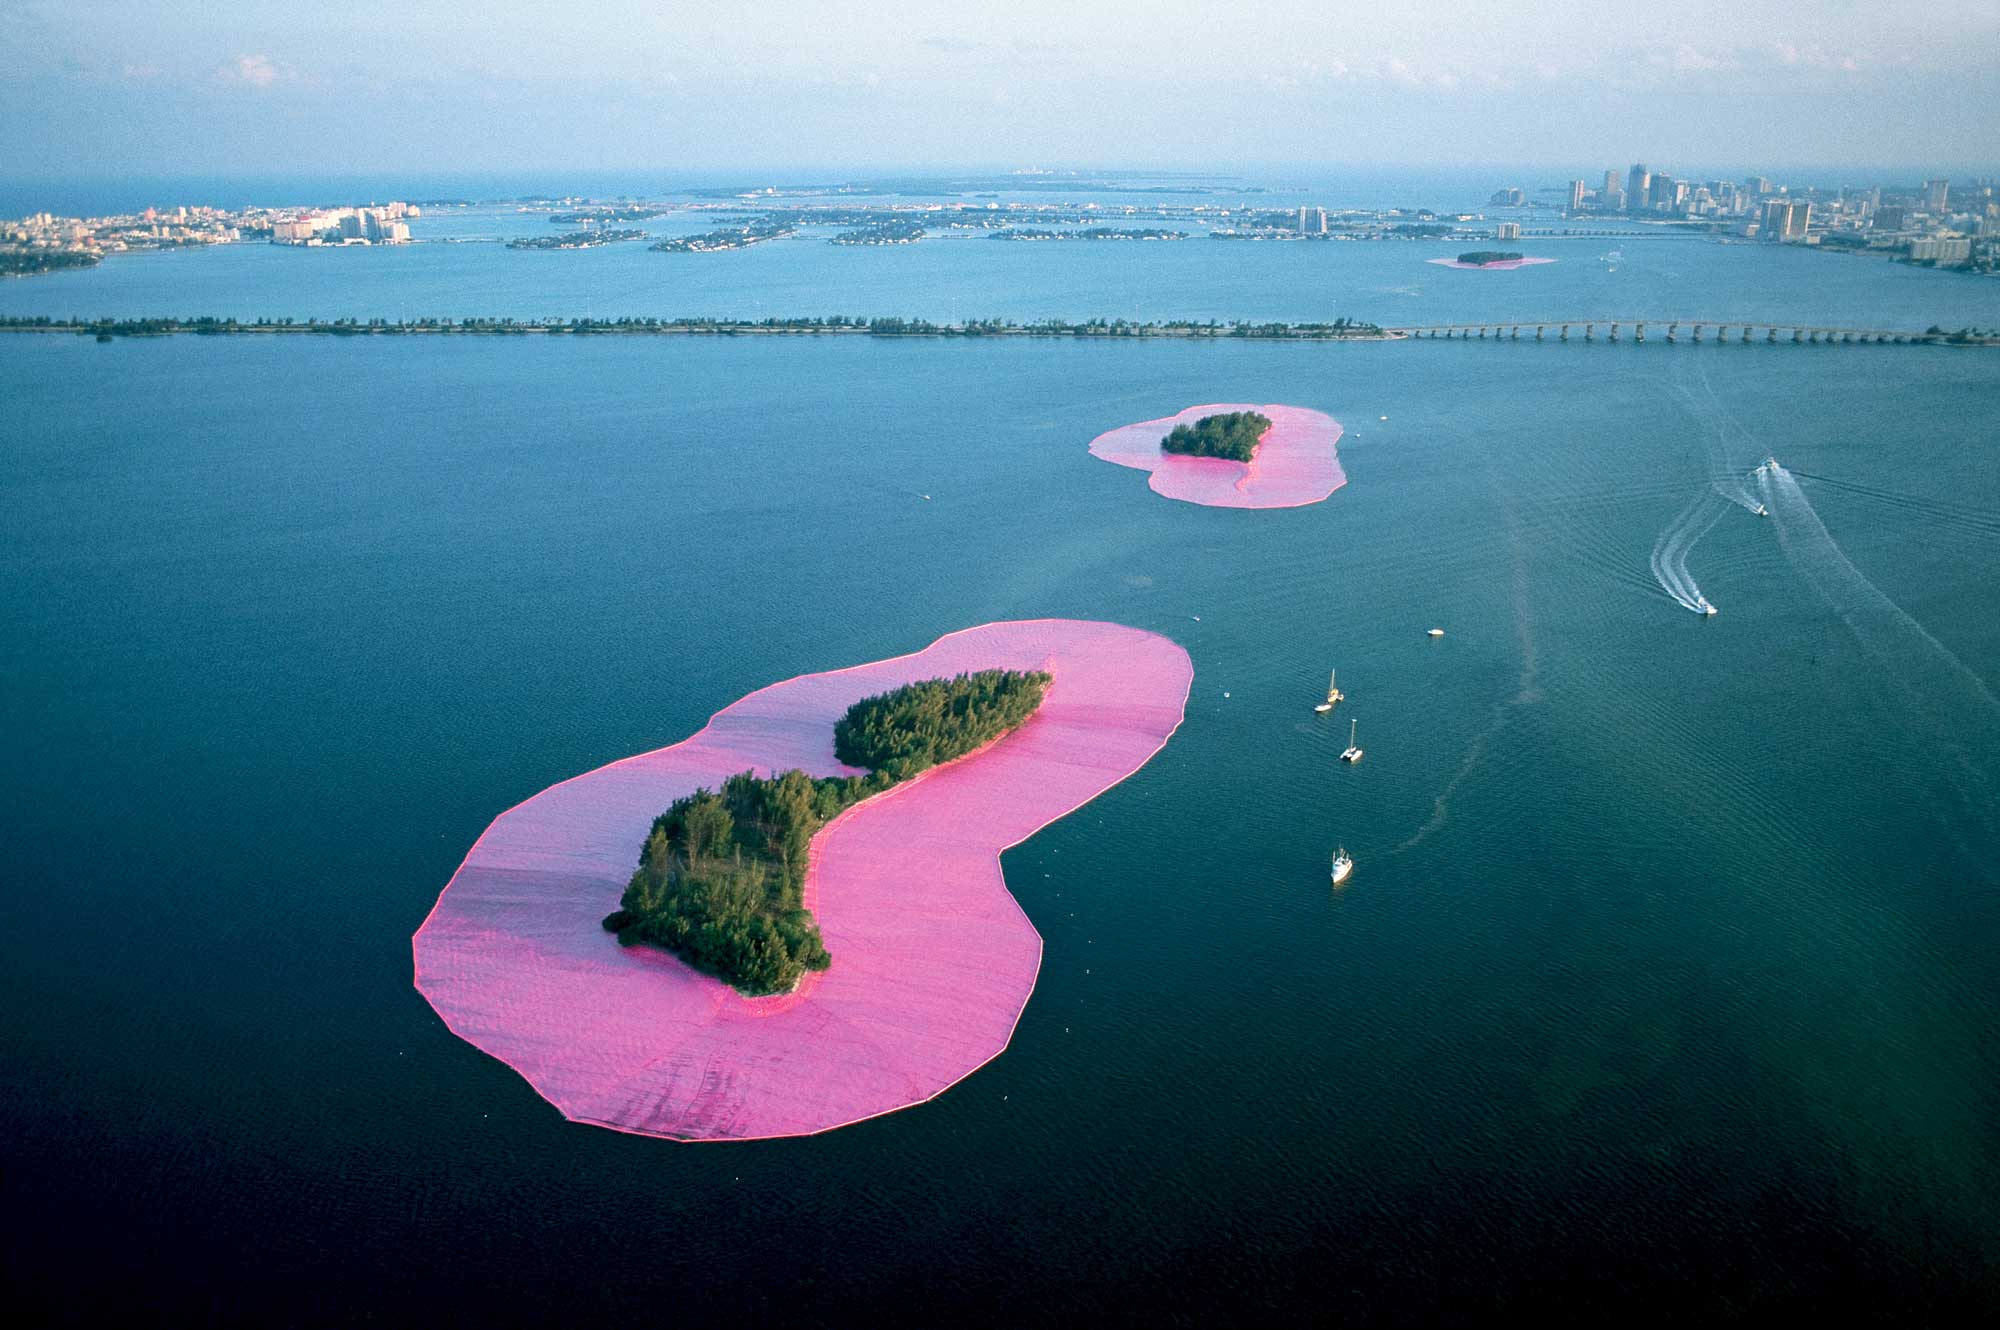 From the Archives: Christo Surrounds Islands in Miami's Biscayne Bay in Fabric, in 1984